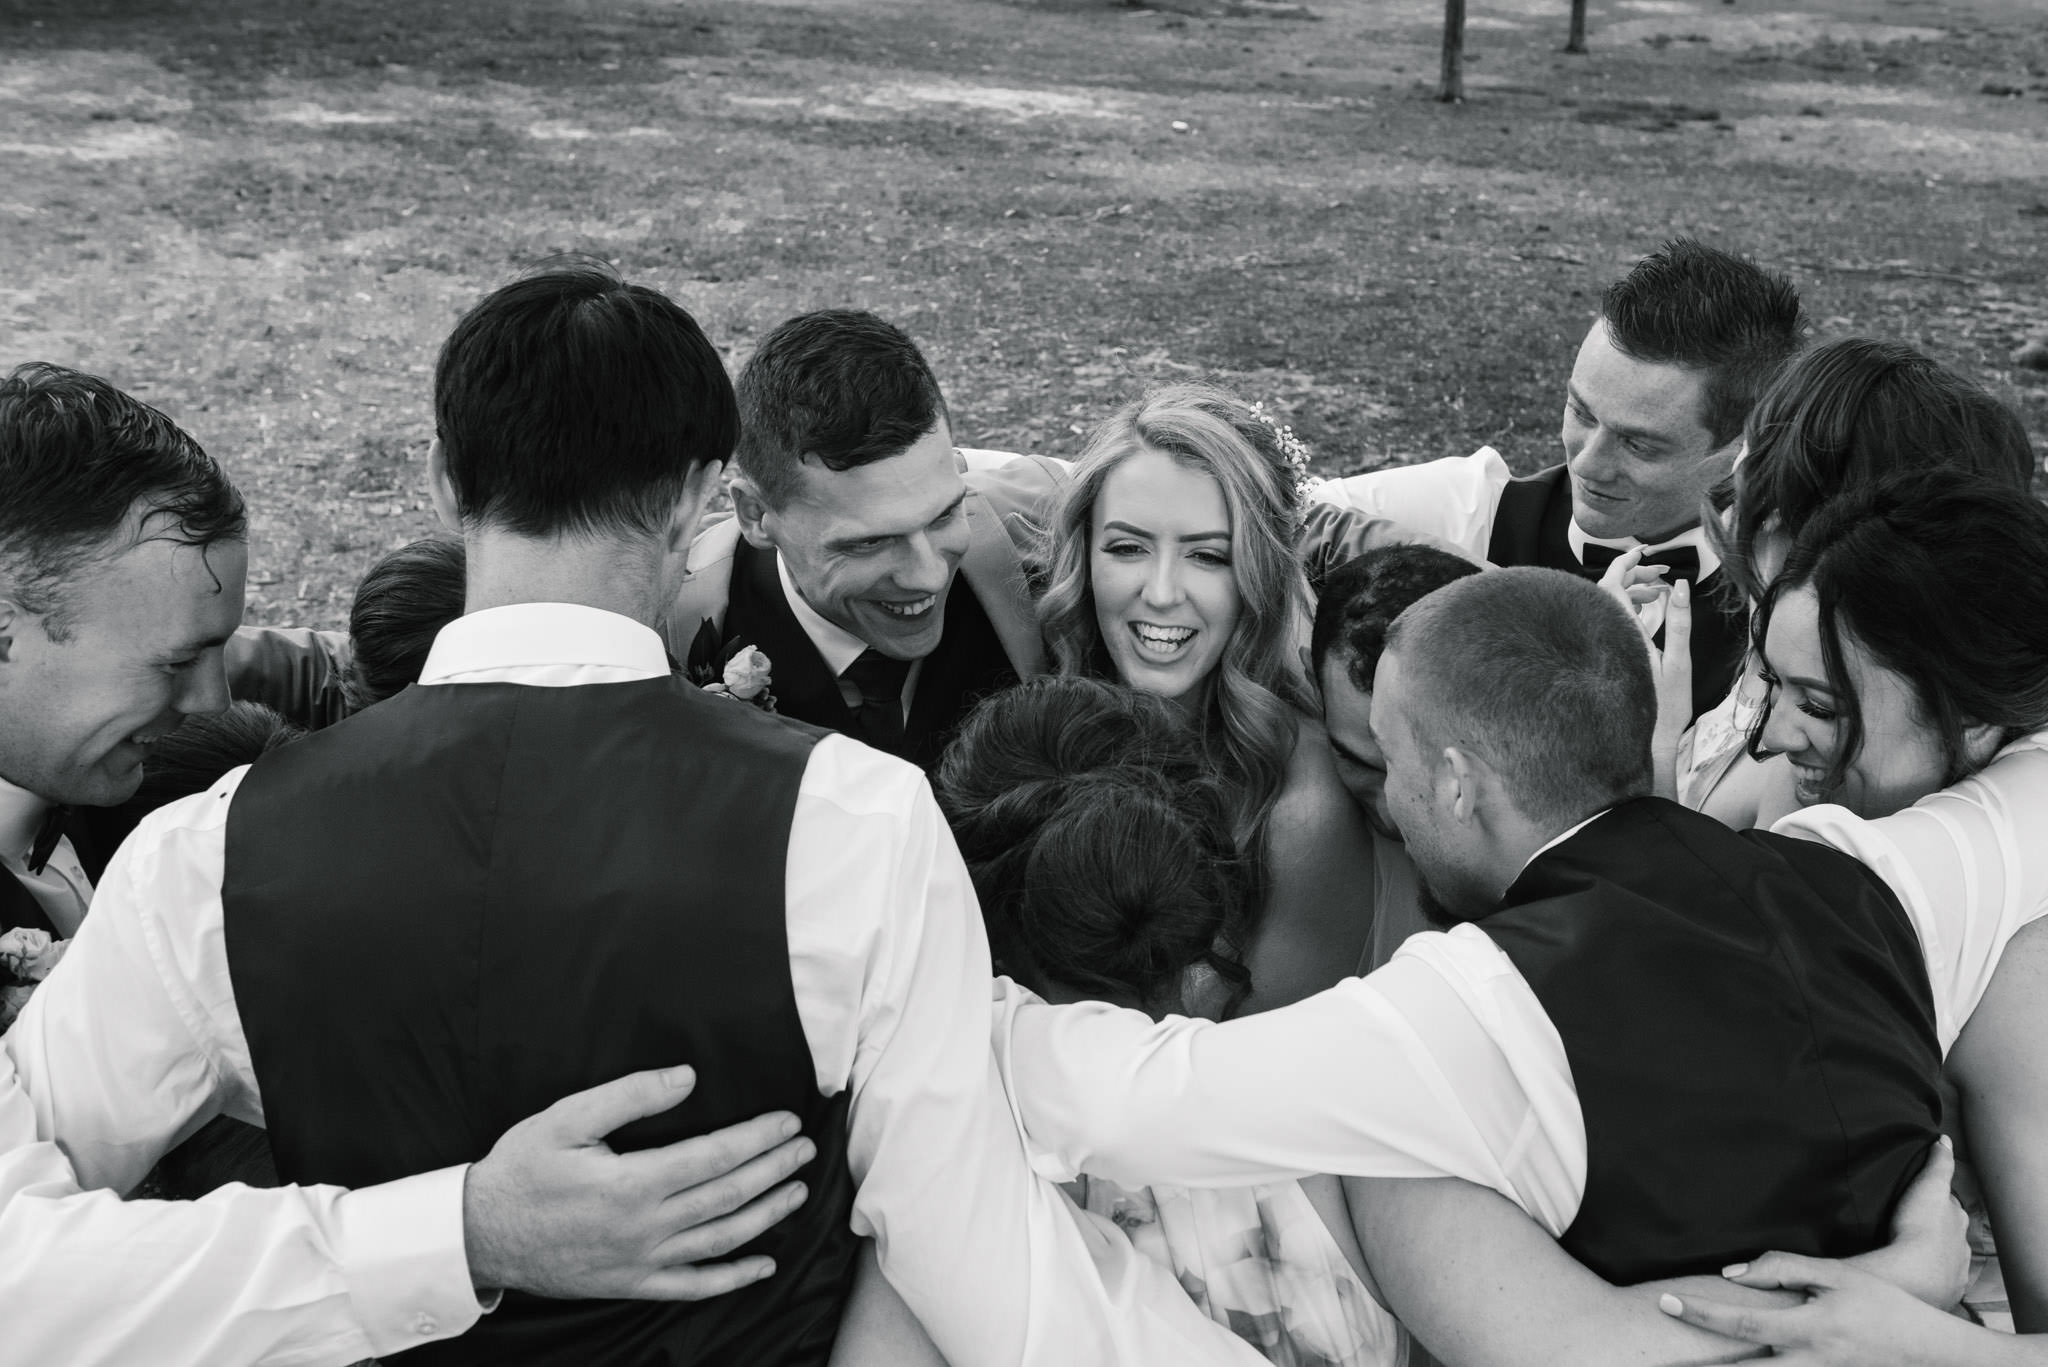 Bridal party gives the newlyweds a group hug